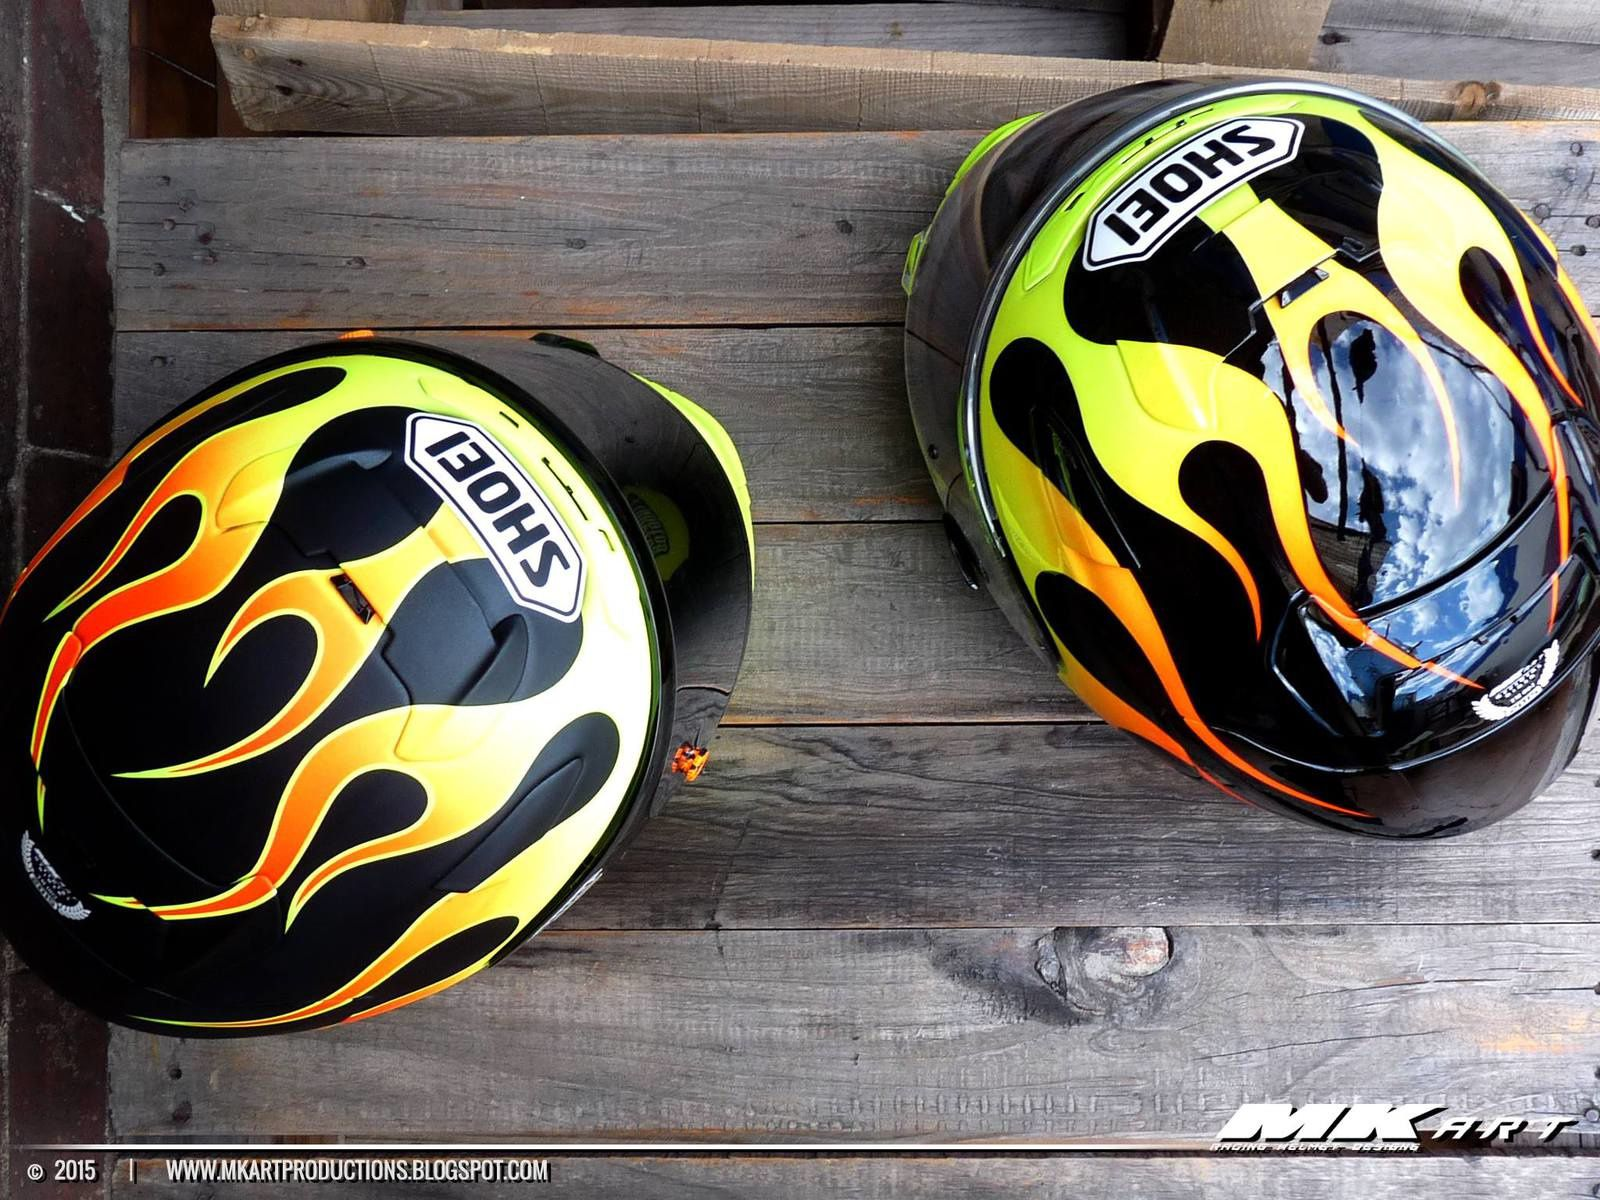 Casque - Page 22 Ob_978372_11357225-984264731604191-5171598998815